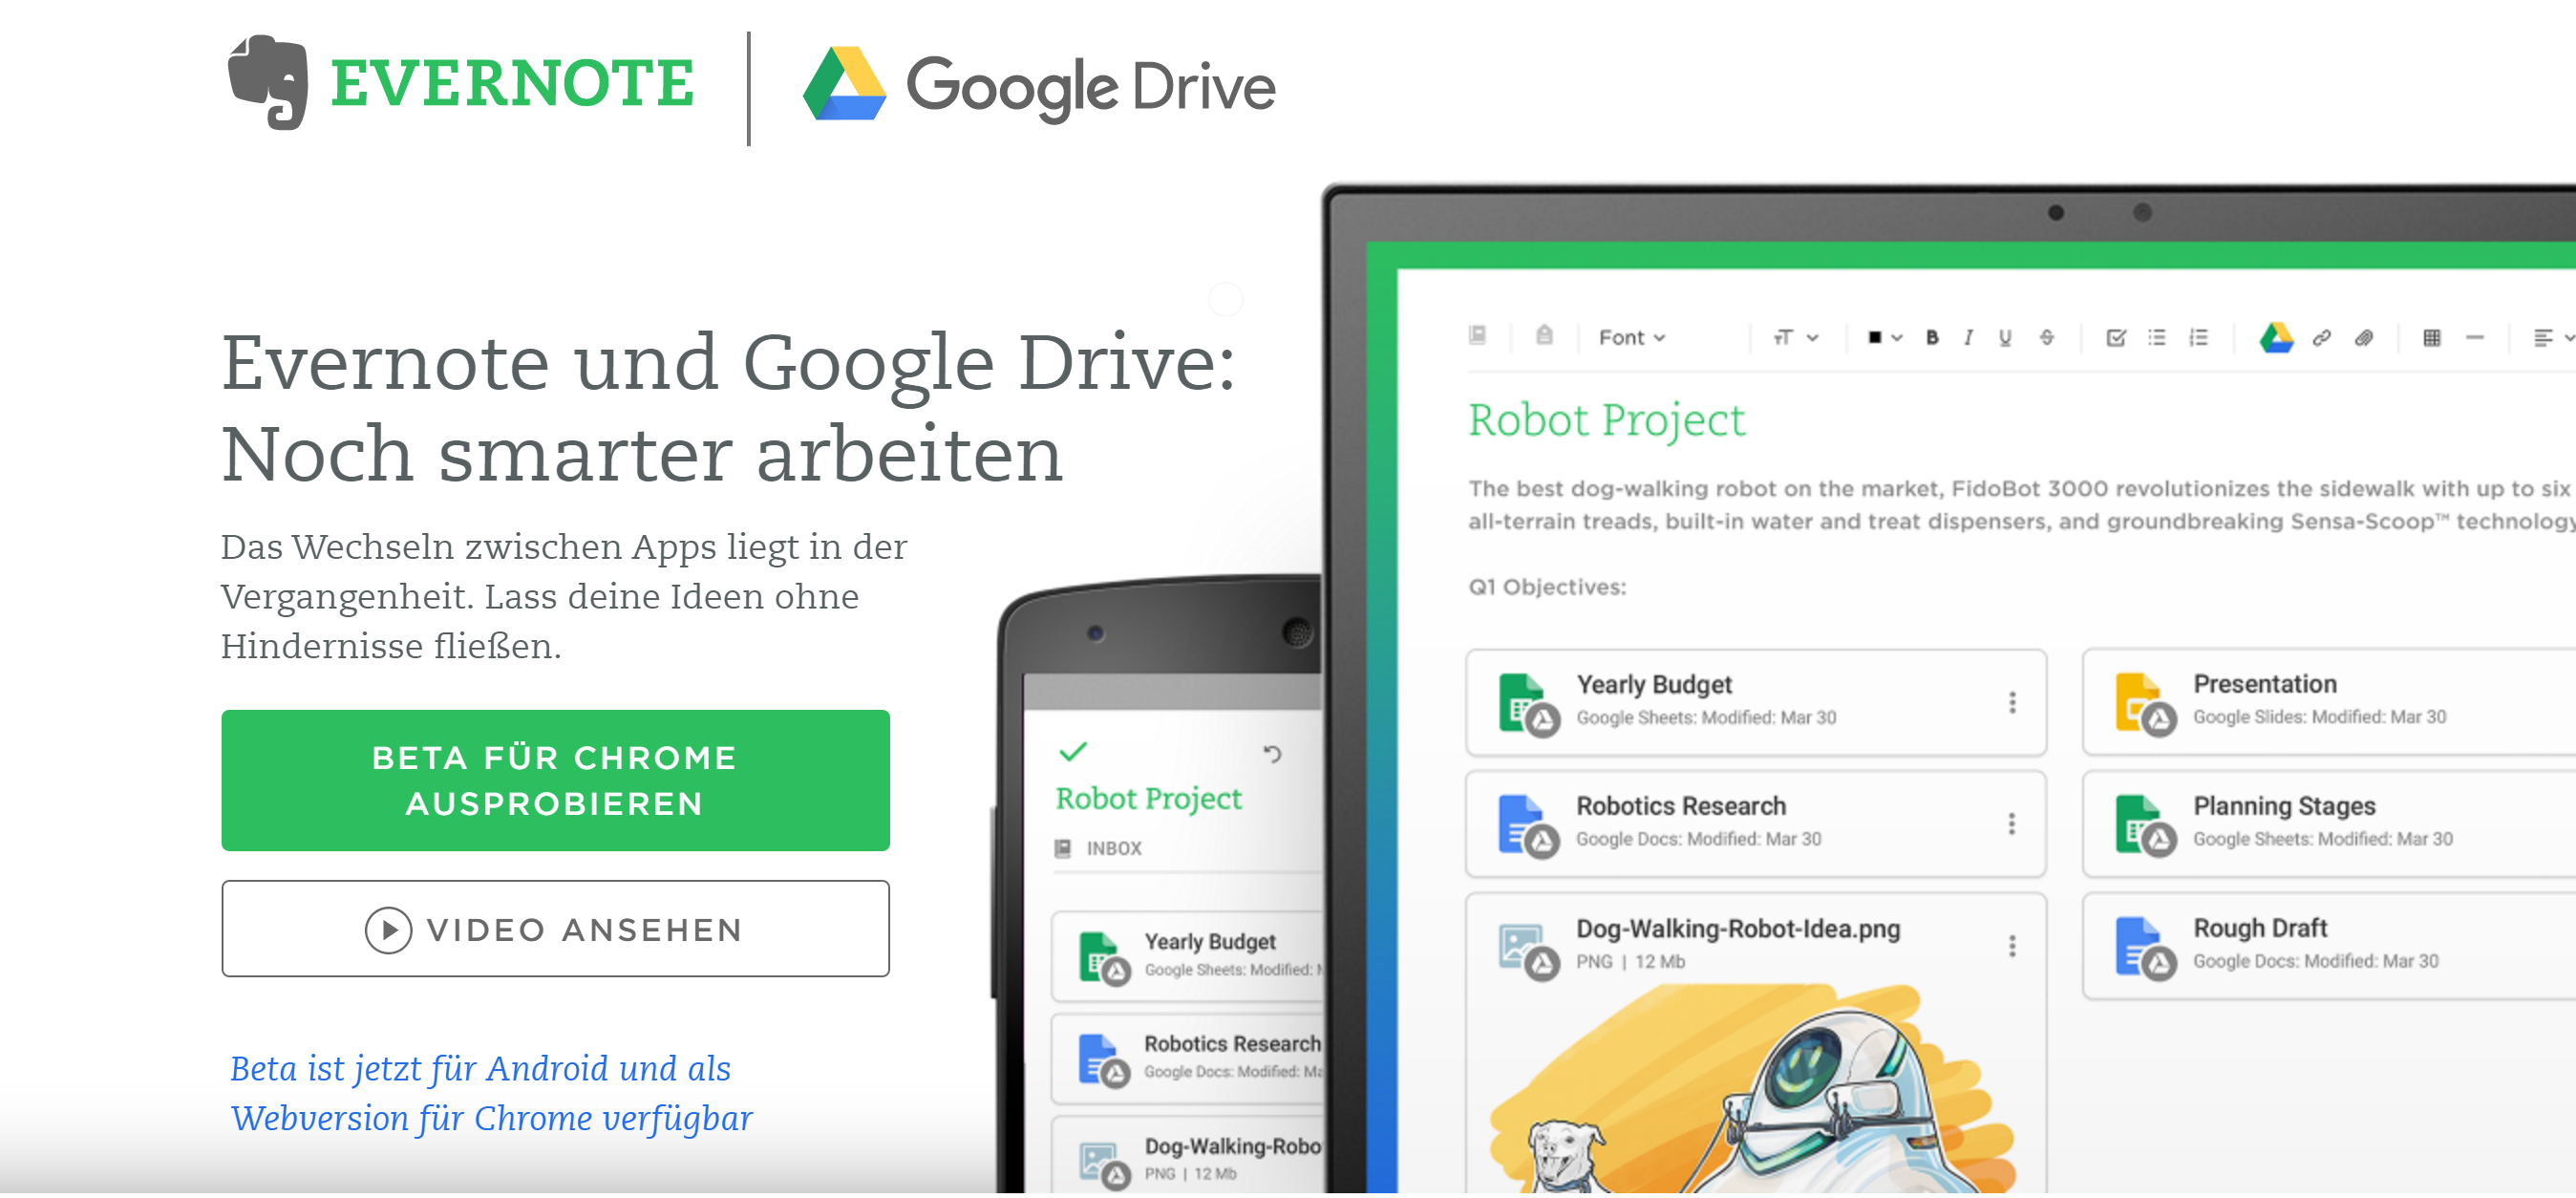 Google Drive Integration in Evernote